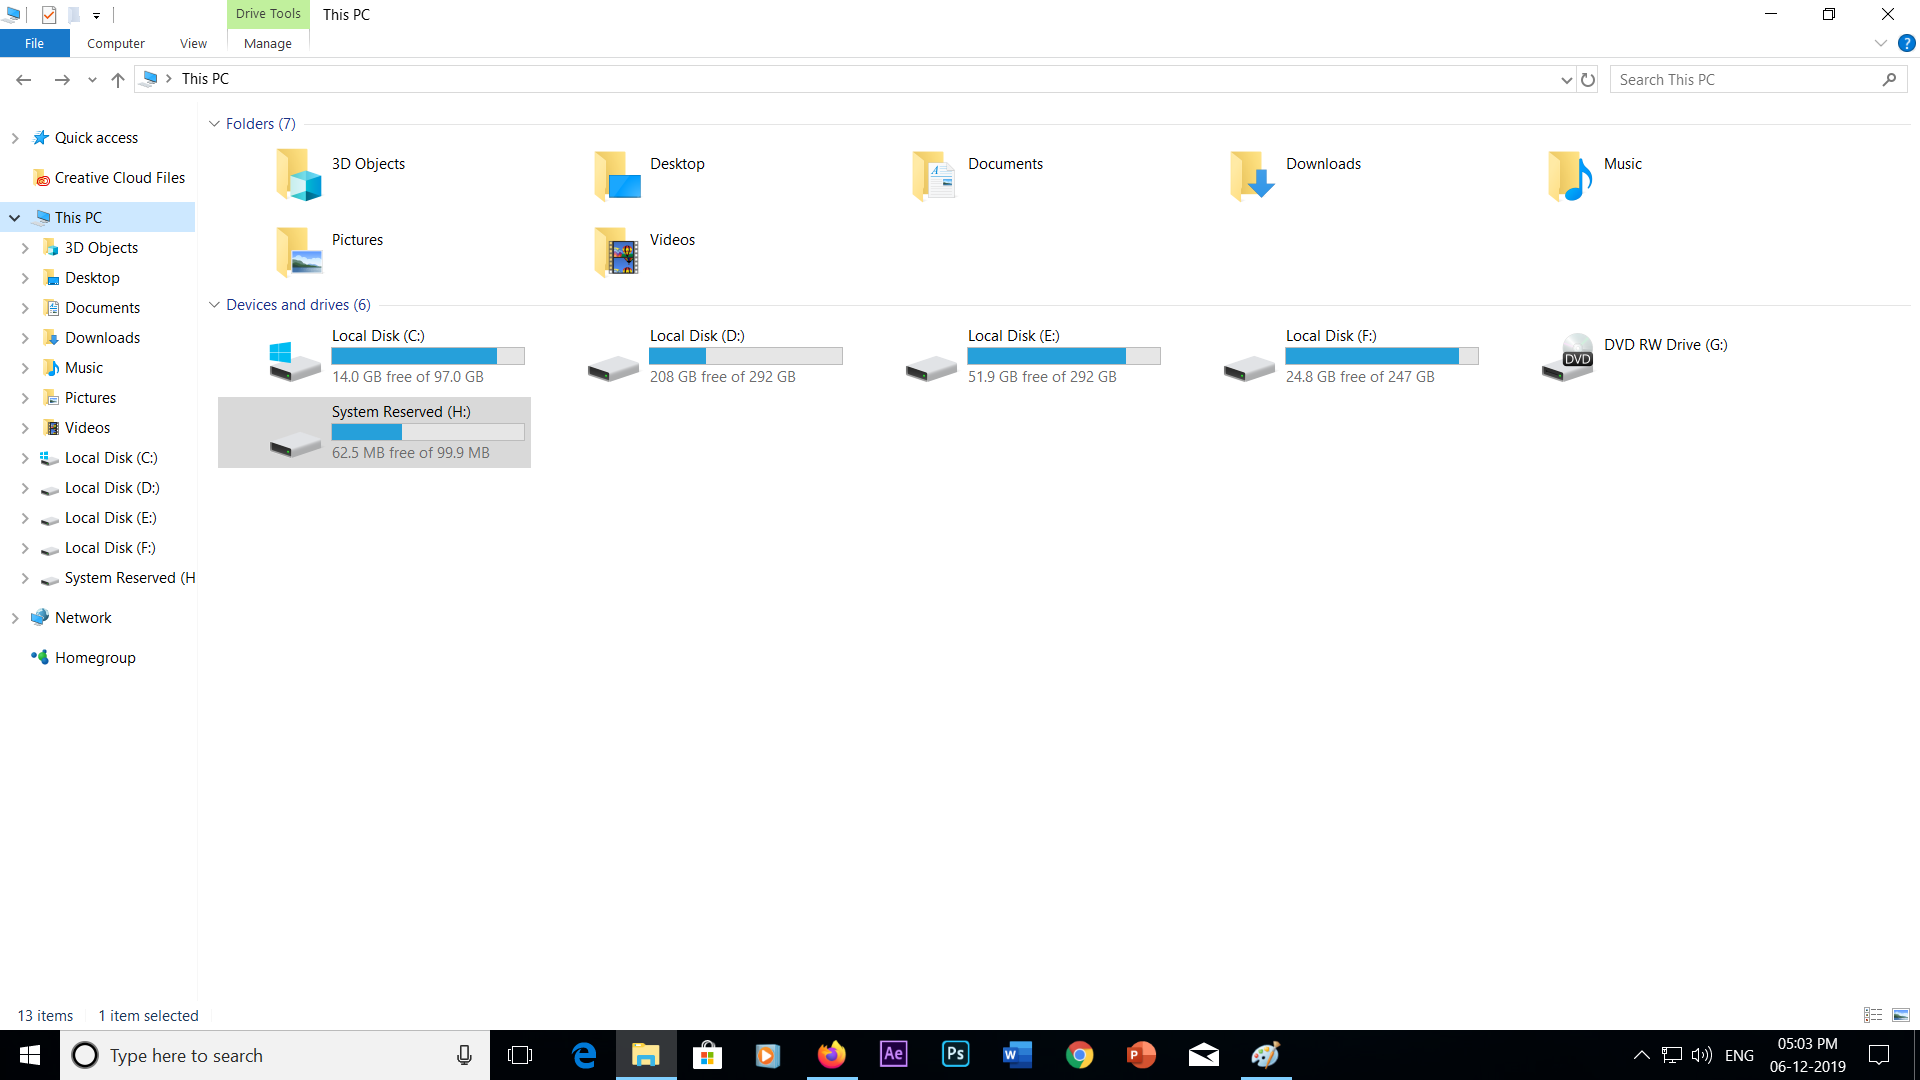 Windows Explorer showing System Reserved drive fc548285-9e28-4e55-a72f-d8d2ae887f7e?upload=true.png